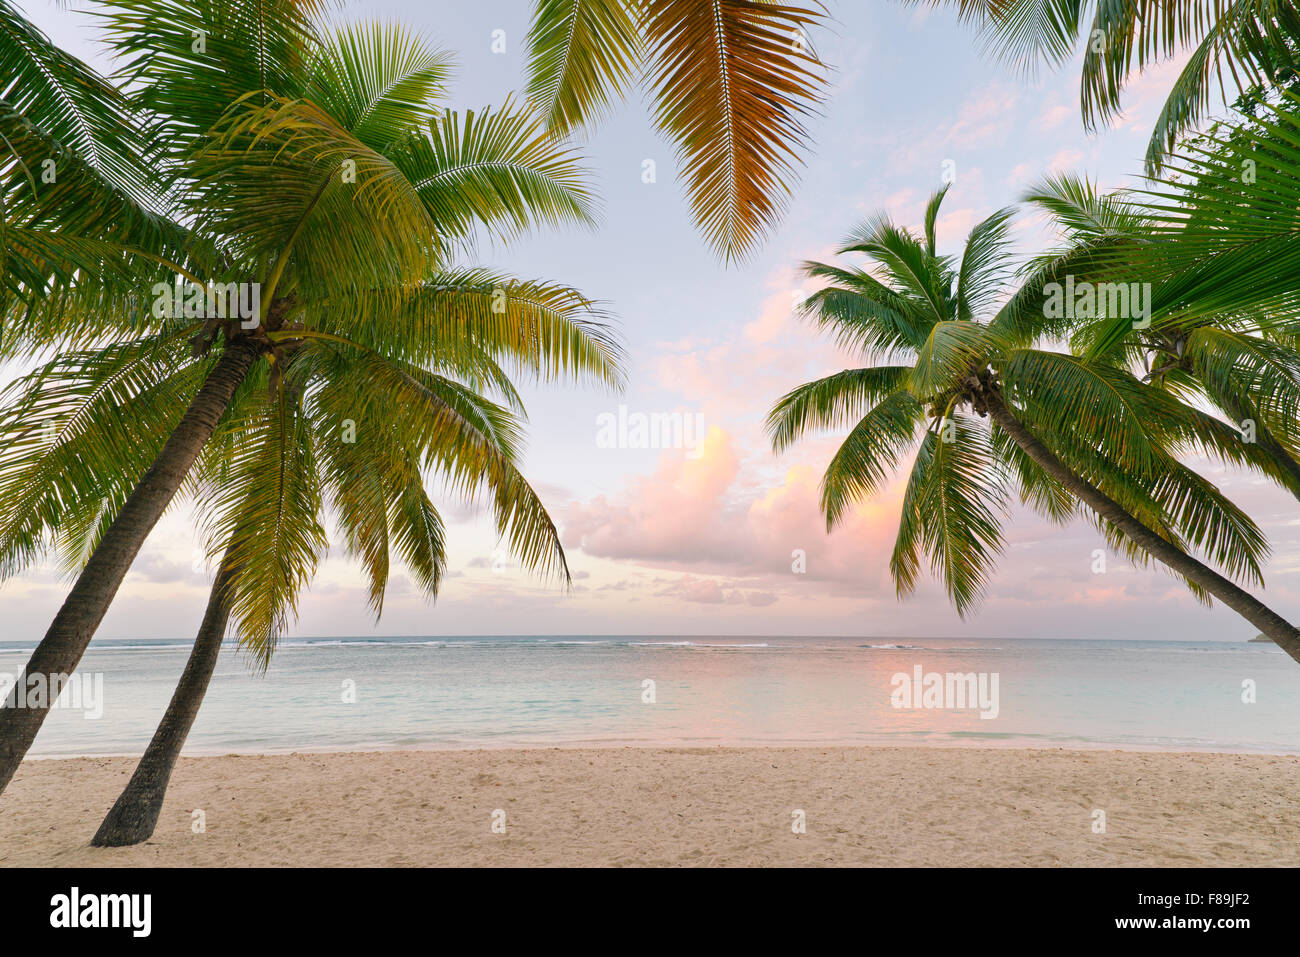 Palm trees and beach, Guadeloupe - Stock Image